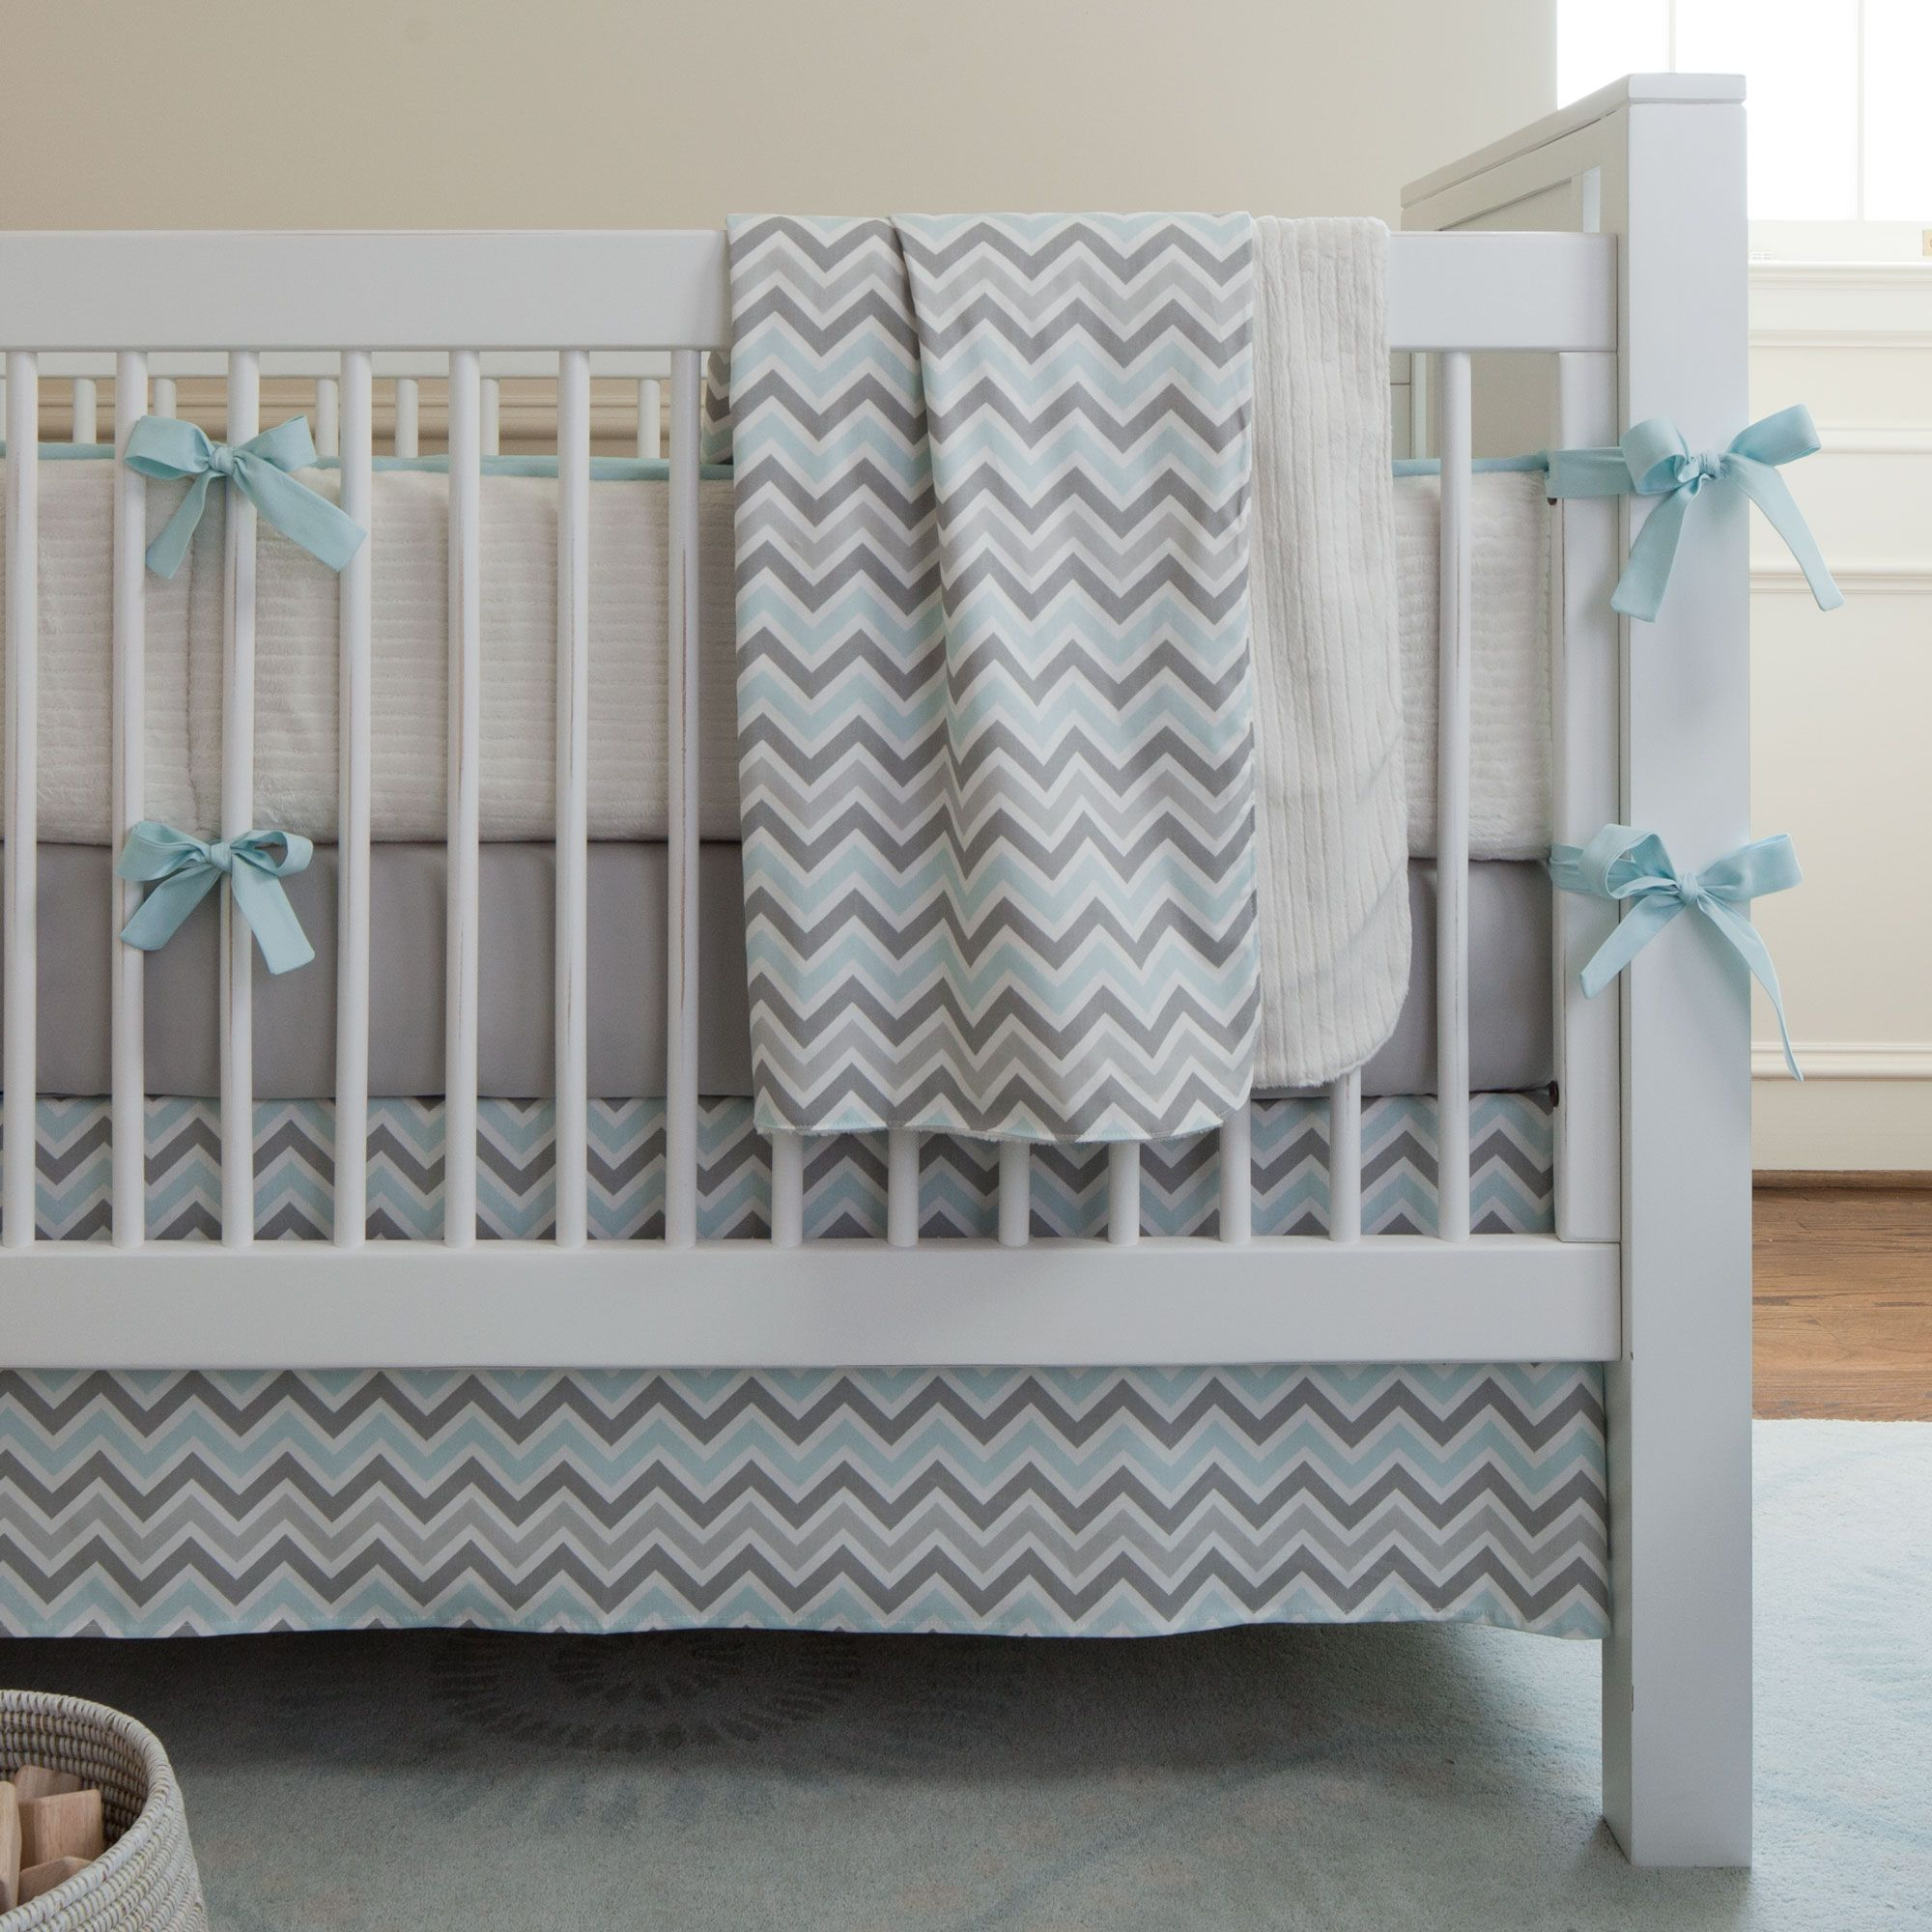 Mist And Gray Chevron Crib Bedding Baby Bedding In Blue And Gray